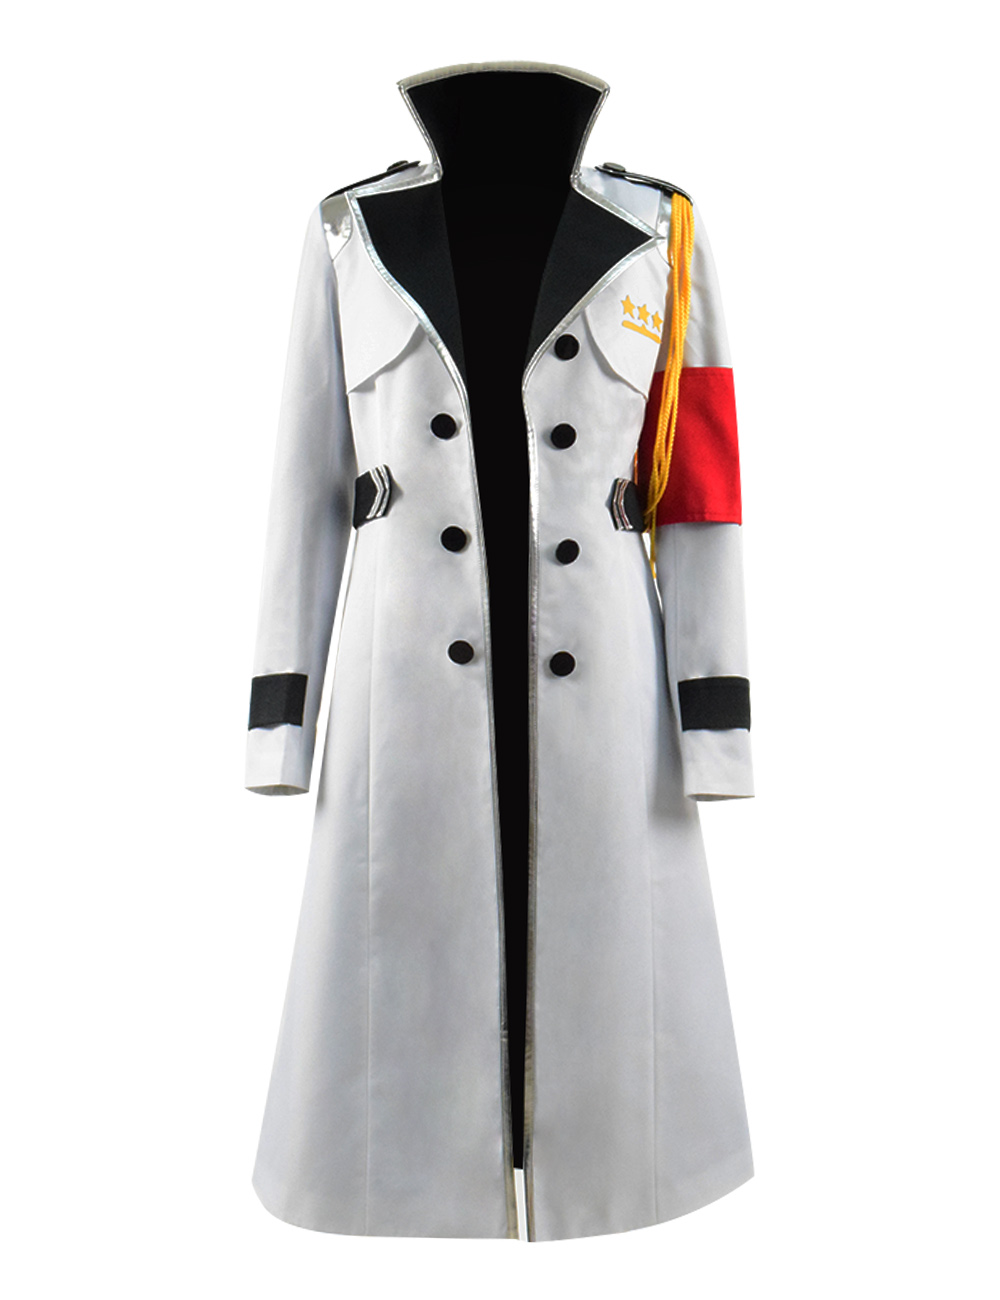 Darling in the frankxx 02 zero two code Cosplay Costume white Jacket Coat Trench